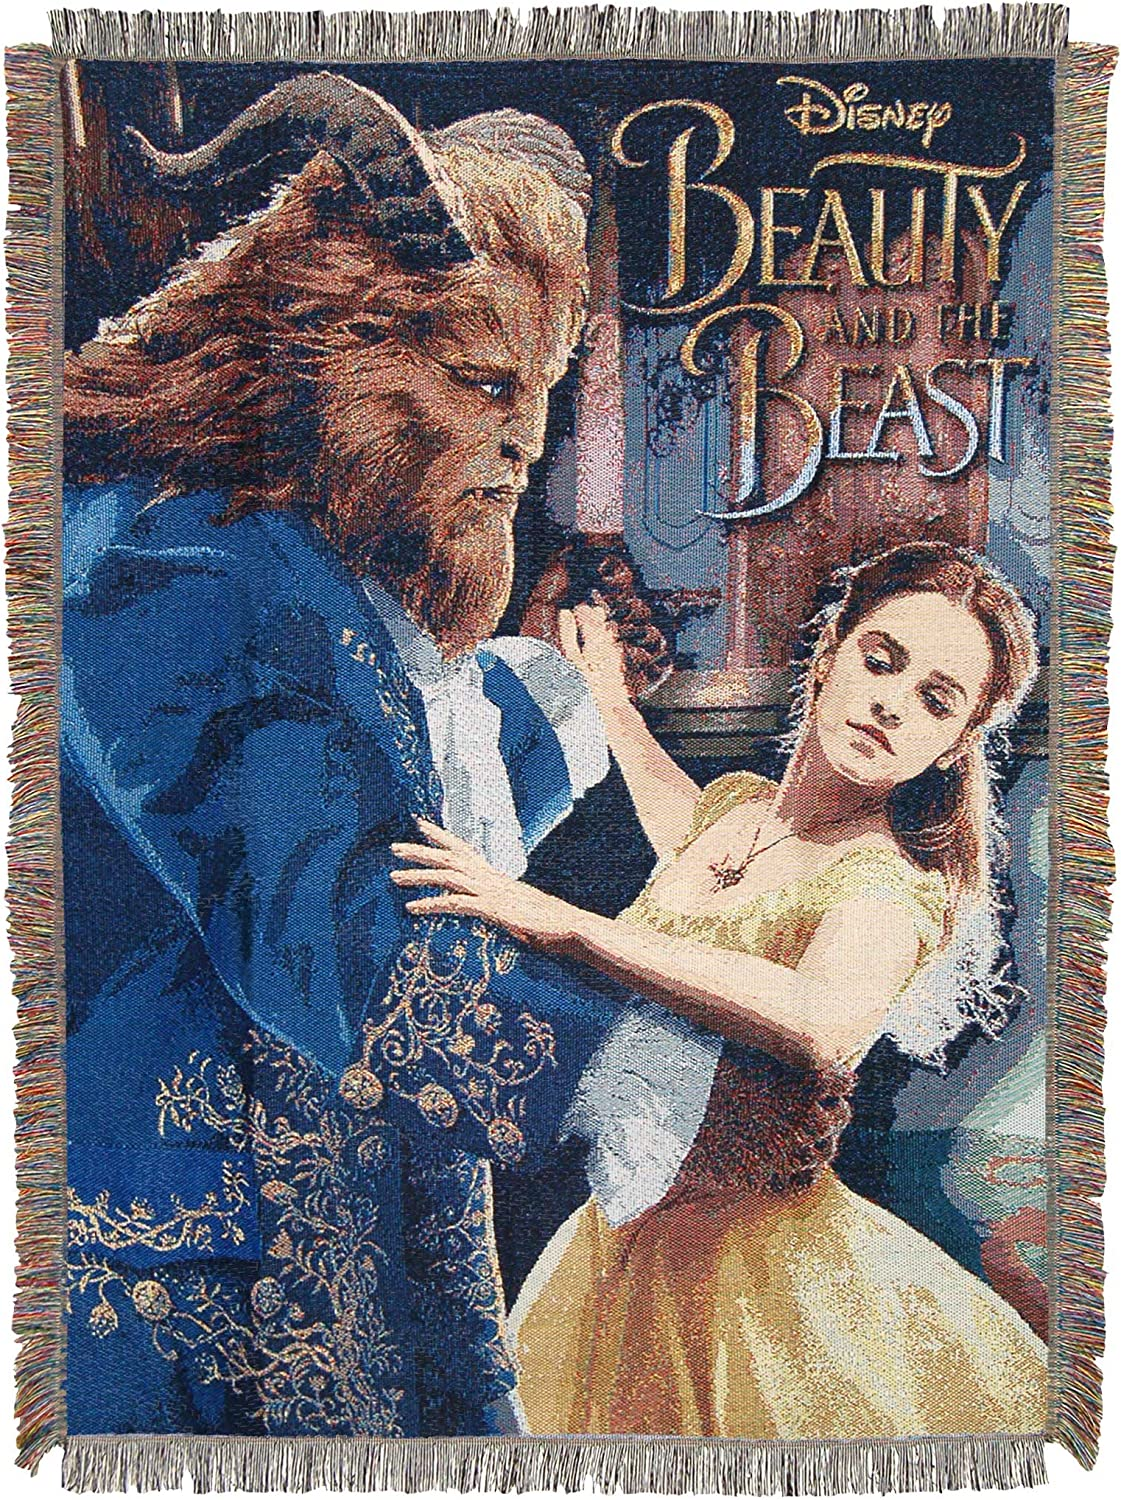 Multi Color 48 x 60 Disneys Beauty and The Beast Ballroom Waltz Woven Tapestry Throw Blanket